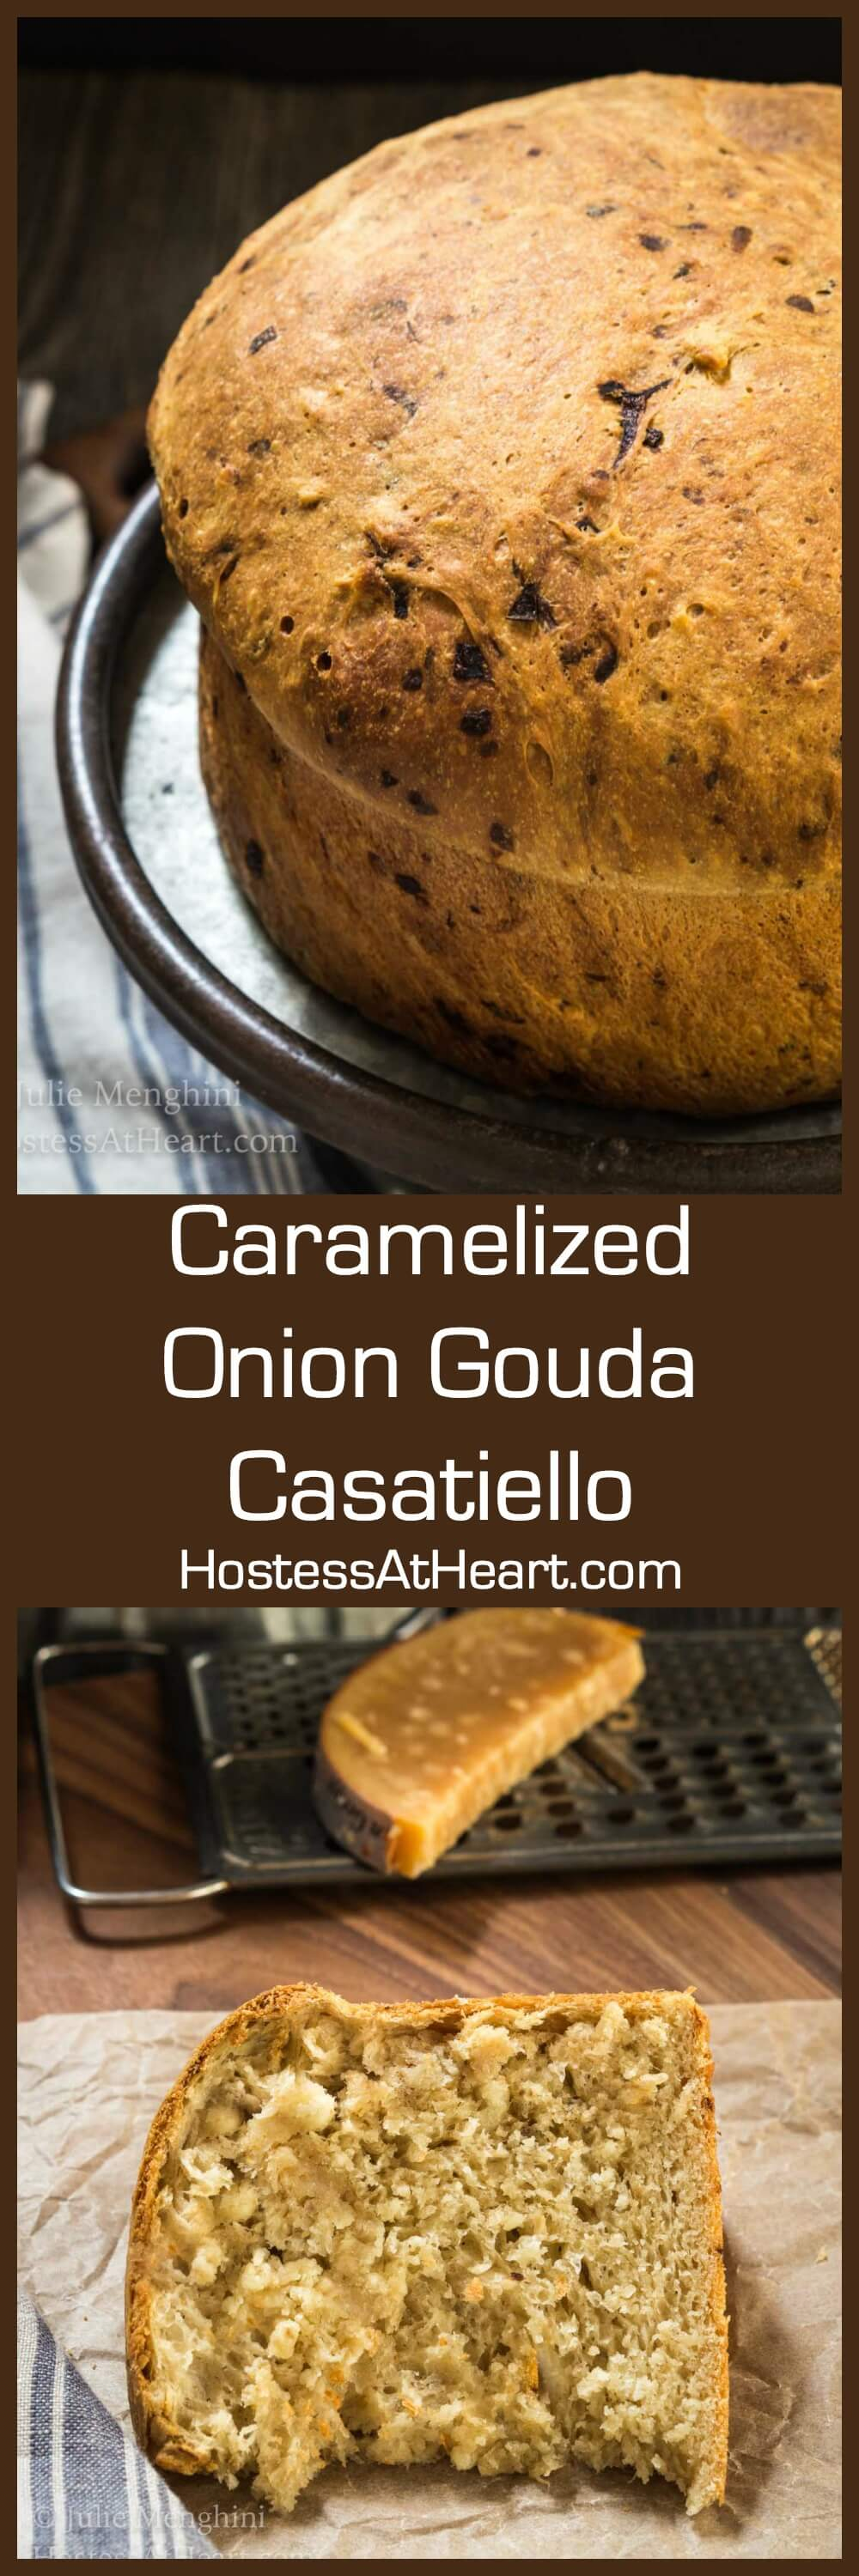 Caramelized Onion Gouda Casatiello is a soft adaption of an Italian Brioche. This loaf is loaded with flavor with bits of caramelized onion and gouda cheese. | HostessAtHeart.com | #homemadebread #breadbakers #breadrecipes #Italianbreadrecipe | rustic Italian bread recipe, homemade bread with yeast, #cheesybread